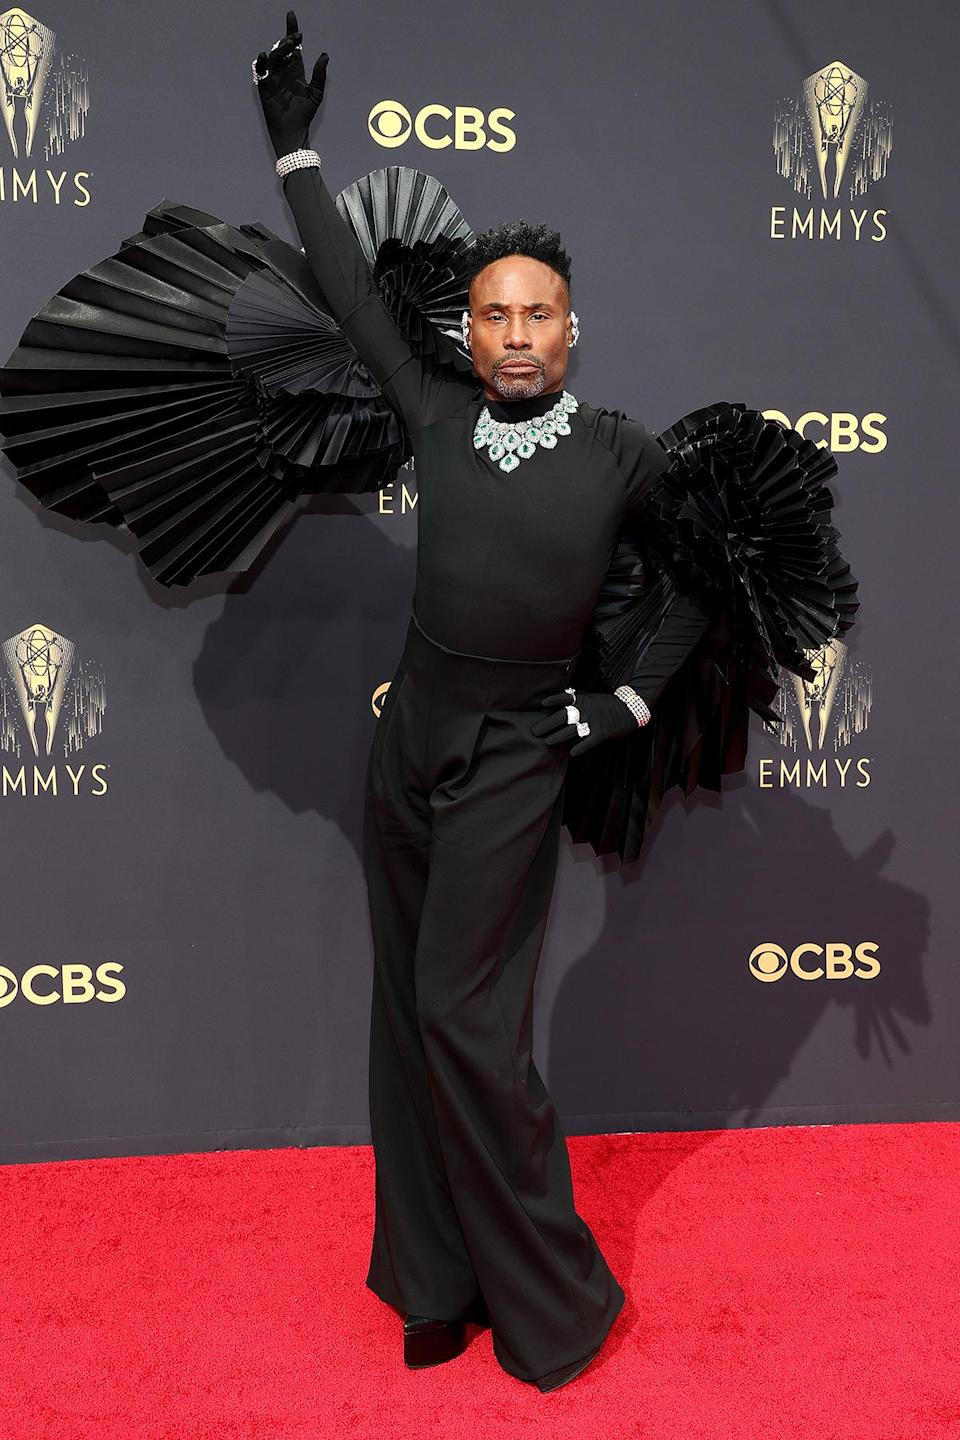 """<p>The <a href=""""https://people.com/style/2021-emmy-awards-best-dressed-stars/"""" rel=""""nofollow noopener"""" target=""""_blank"""" data-ylk=""""slk:red carpet did not disappoint this year"""" class=""""link rapid-noclick-resp"""">red carpet did not disappoint this year</a>, especially with <a href=""""https://people.com/style/2021-emmy-awards-stylish-red-carpet-moments/"""" rel=""""nofollow noopener"""" target=""""_blank"""" data-ylk=""""slk:Billy Porter dominating with a stunning sequence of fierce poses"""" class=""""link rapid-noclick-resp"""">Billy Porter dominating with a stunning sequence of fierce poses</a>. Later in the night, <em>Saturday Night Live</em>'s Bowen Yang had everyone talking about <a href=""""https://people.com/style/2021-emmy-awards-stylish-red-carpet-moments/?slide=9040de78-780a-490a-8105-8dabe59837e2#9040de78-780a-490a-8105-8dabe59837e2"""" rel=""""nofollow noopener"""" target=""""_blank"""" data-ylk=""""slk:his sky-high silver boots"""" class=""""link rapid-noclick-resp"""">his sky-high silver boots</a> and <em>The Crown</em>'s Emma Corrin brought the oohs and ahhs with their <a href=""""https://people.com/style/2021-emmy-awards-stylish-red-carpet-moments/?slide=30427503-74b8-4209-aab3-01d93ed9d2ee#30427503-74b8-4209-aab3-01d93ed9d2ee"""" rel=""""nofollow noopener"""" target=""""_blank"""" data-ylk=""""slk:&quot;crucible realness&quot; ensemble"""" class=""""link rapid-noclick-resp"""">""""crucible realness"""" ensemble</a>.</p>"""